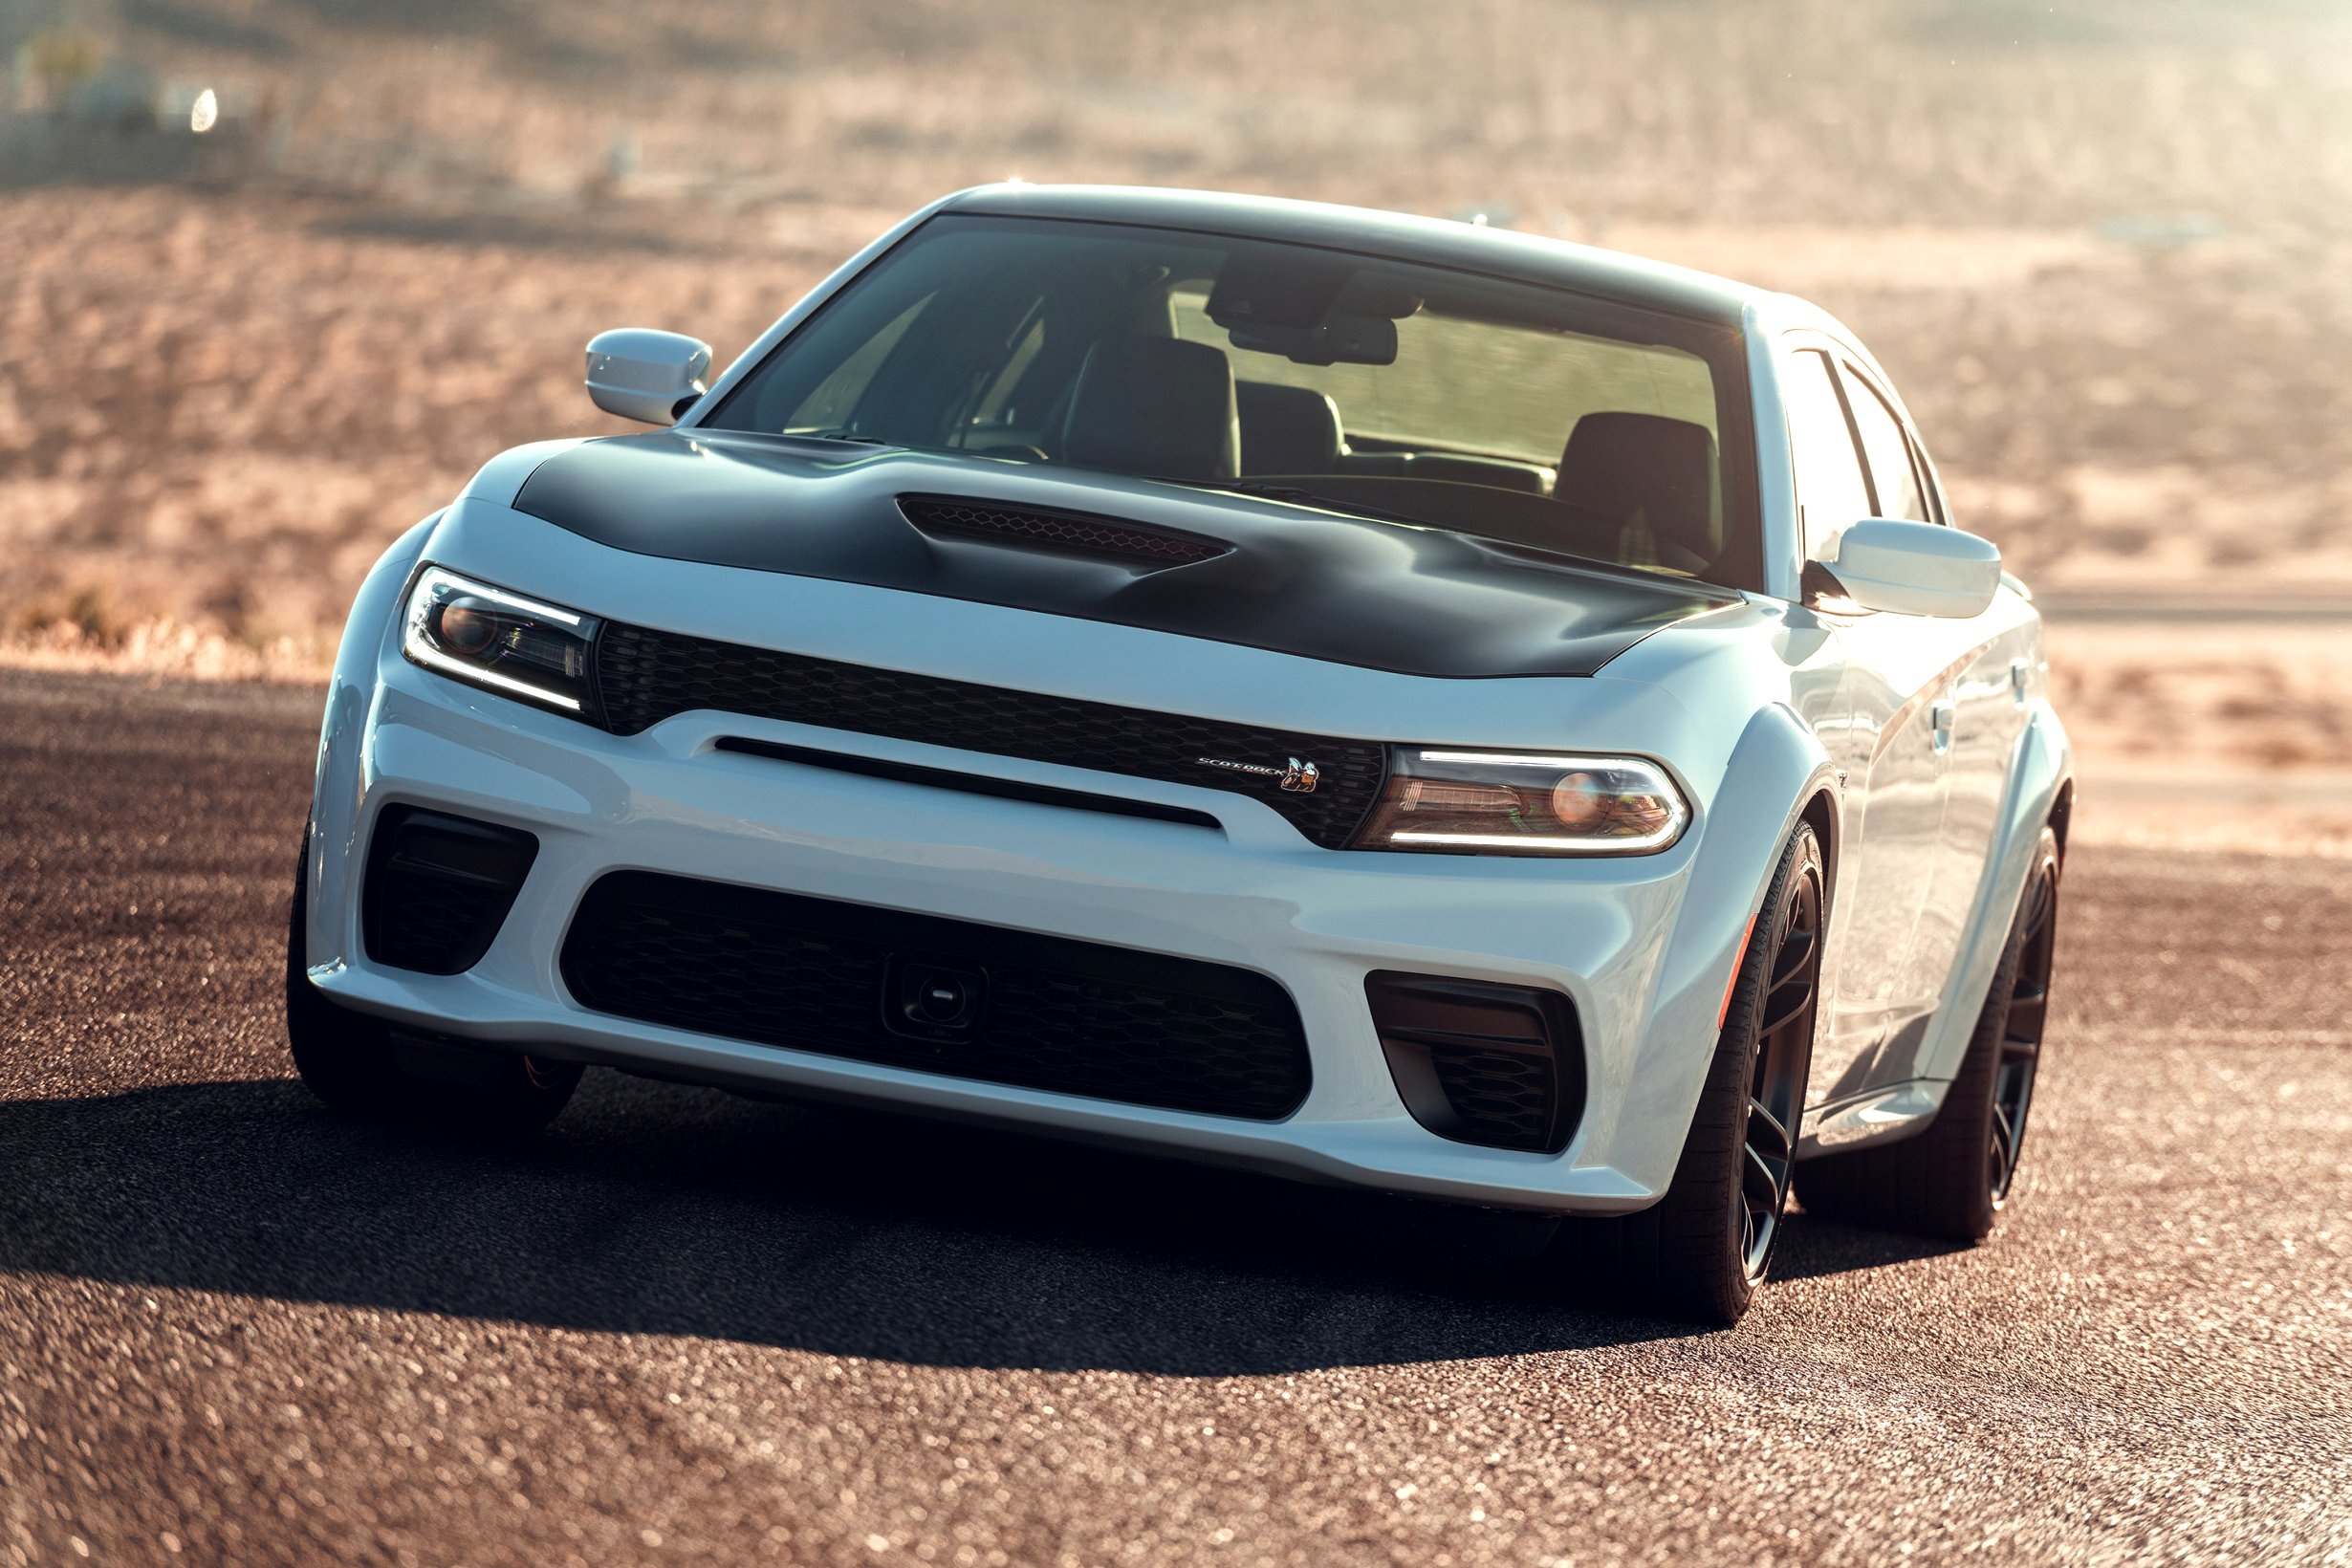 2020 dodge charger Price, Design and Review